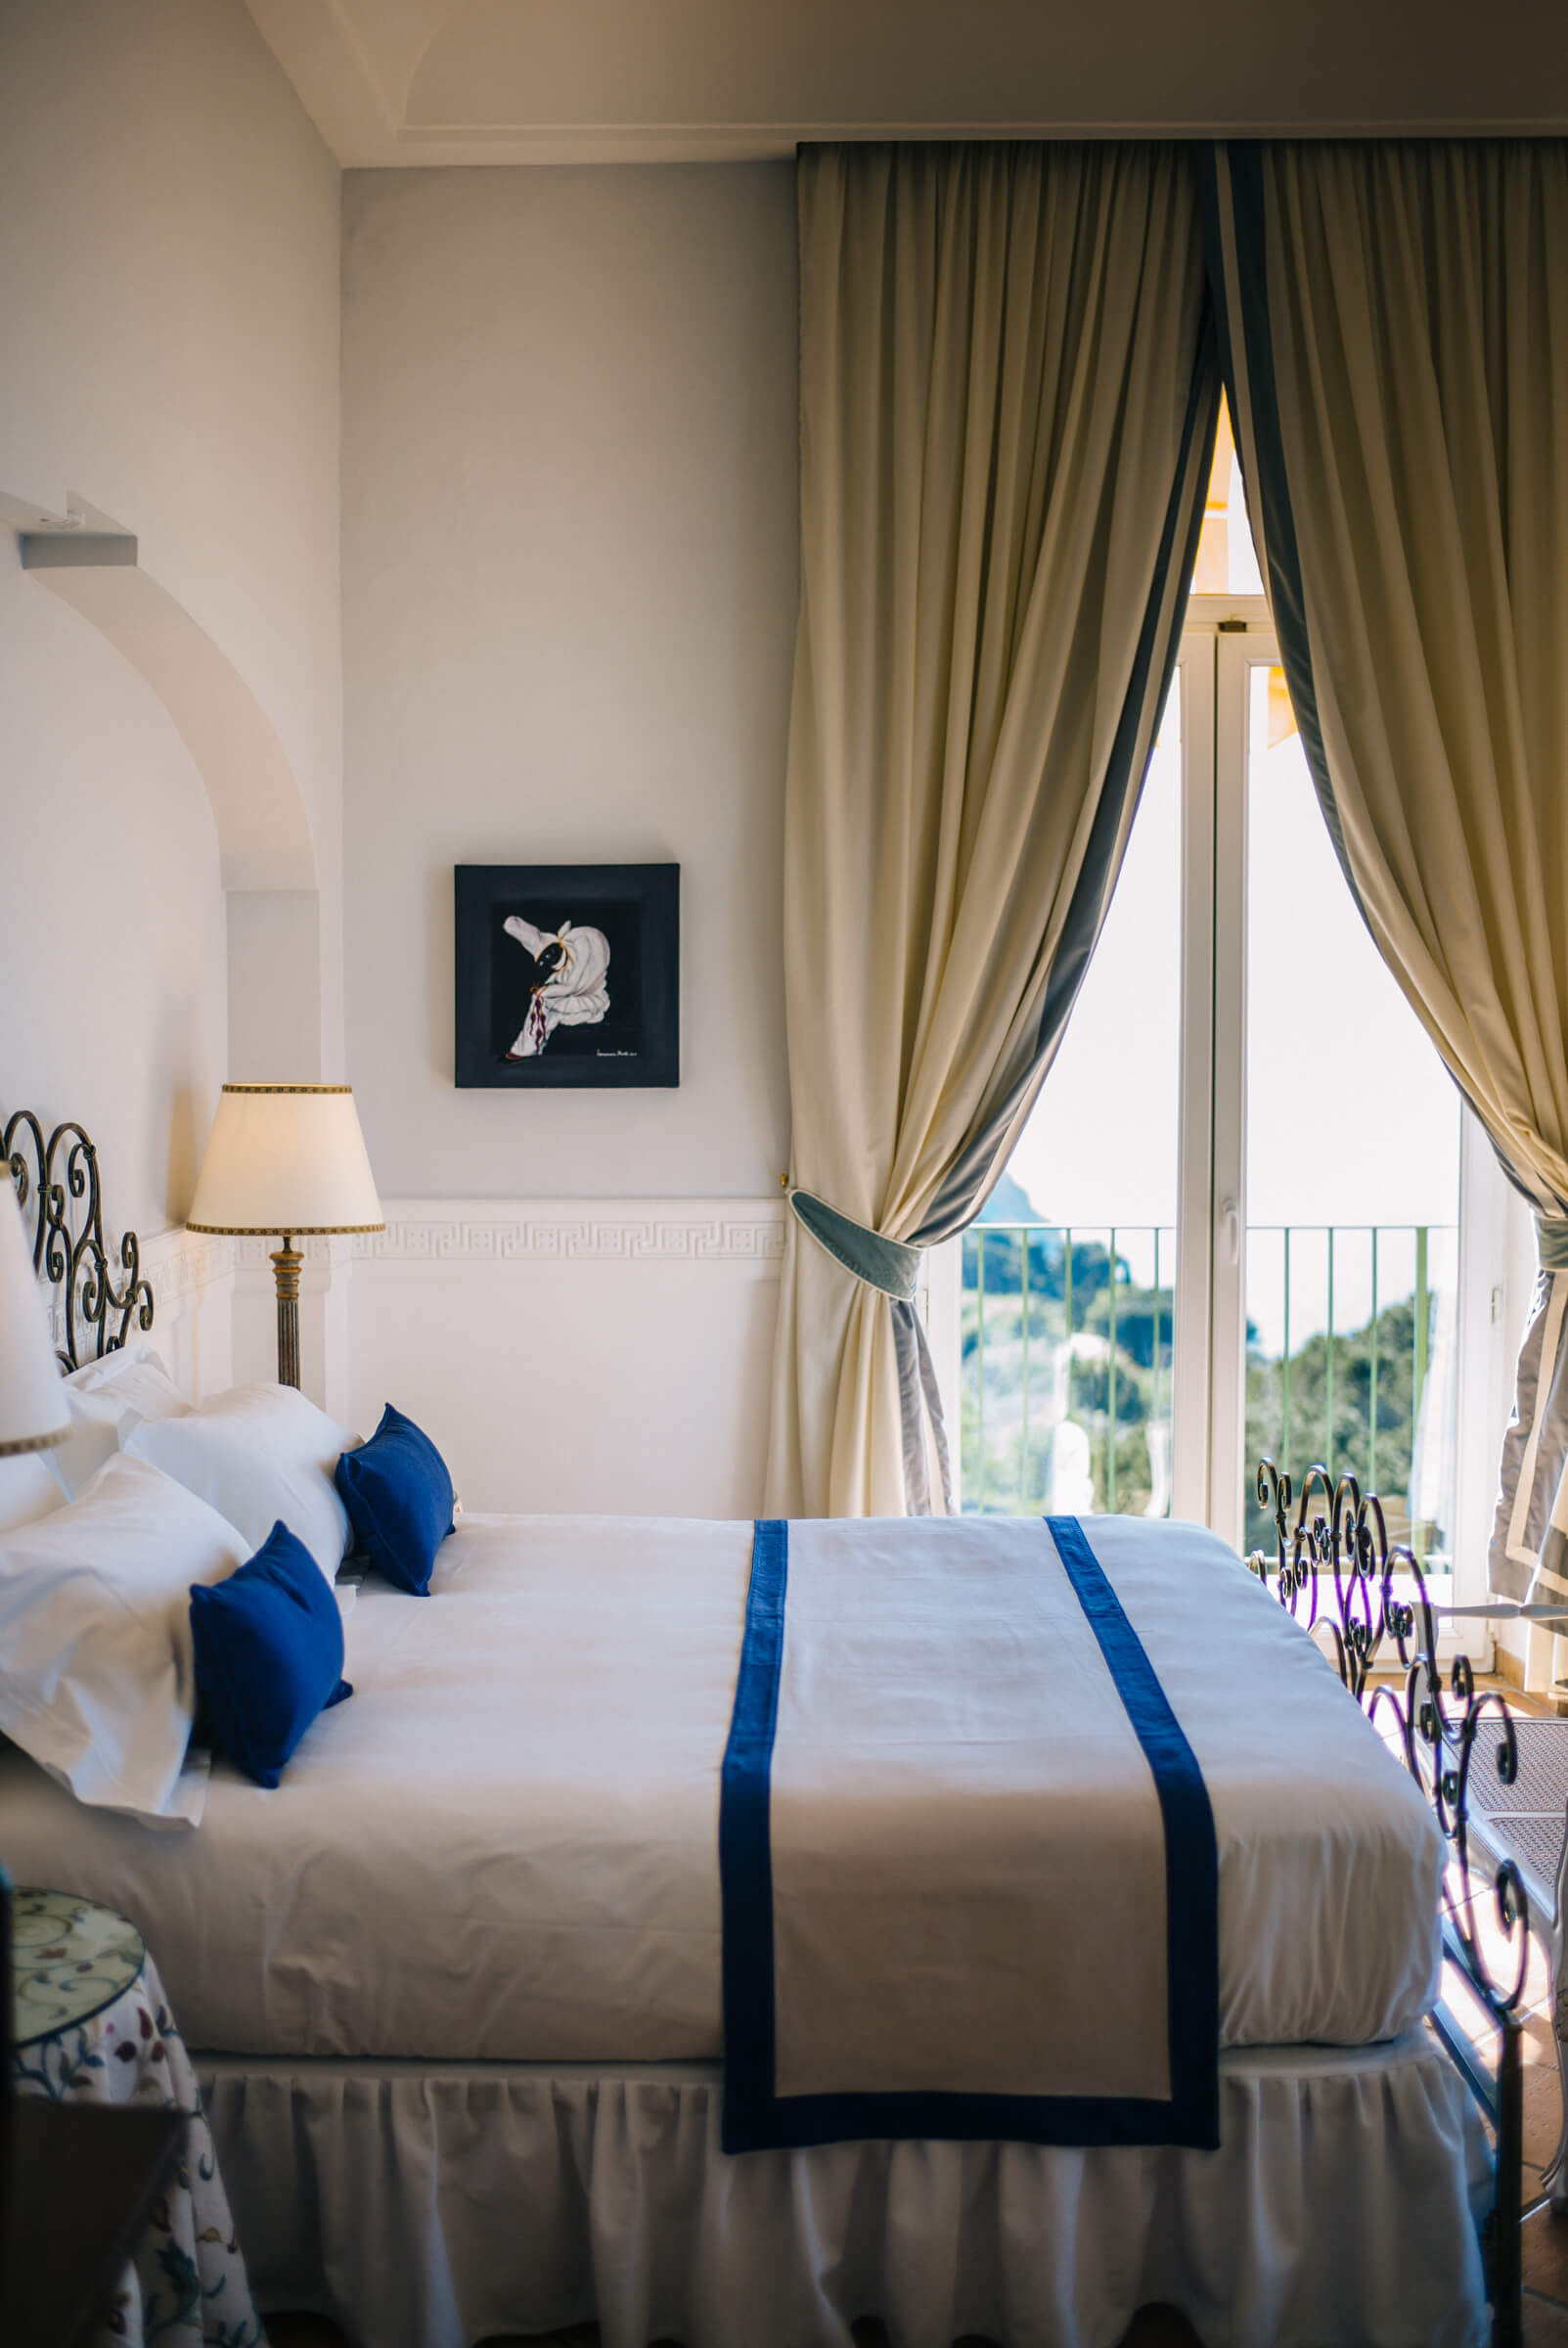 Room at Hotel Caesar Augustus Capri Italy, The Taste Edit